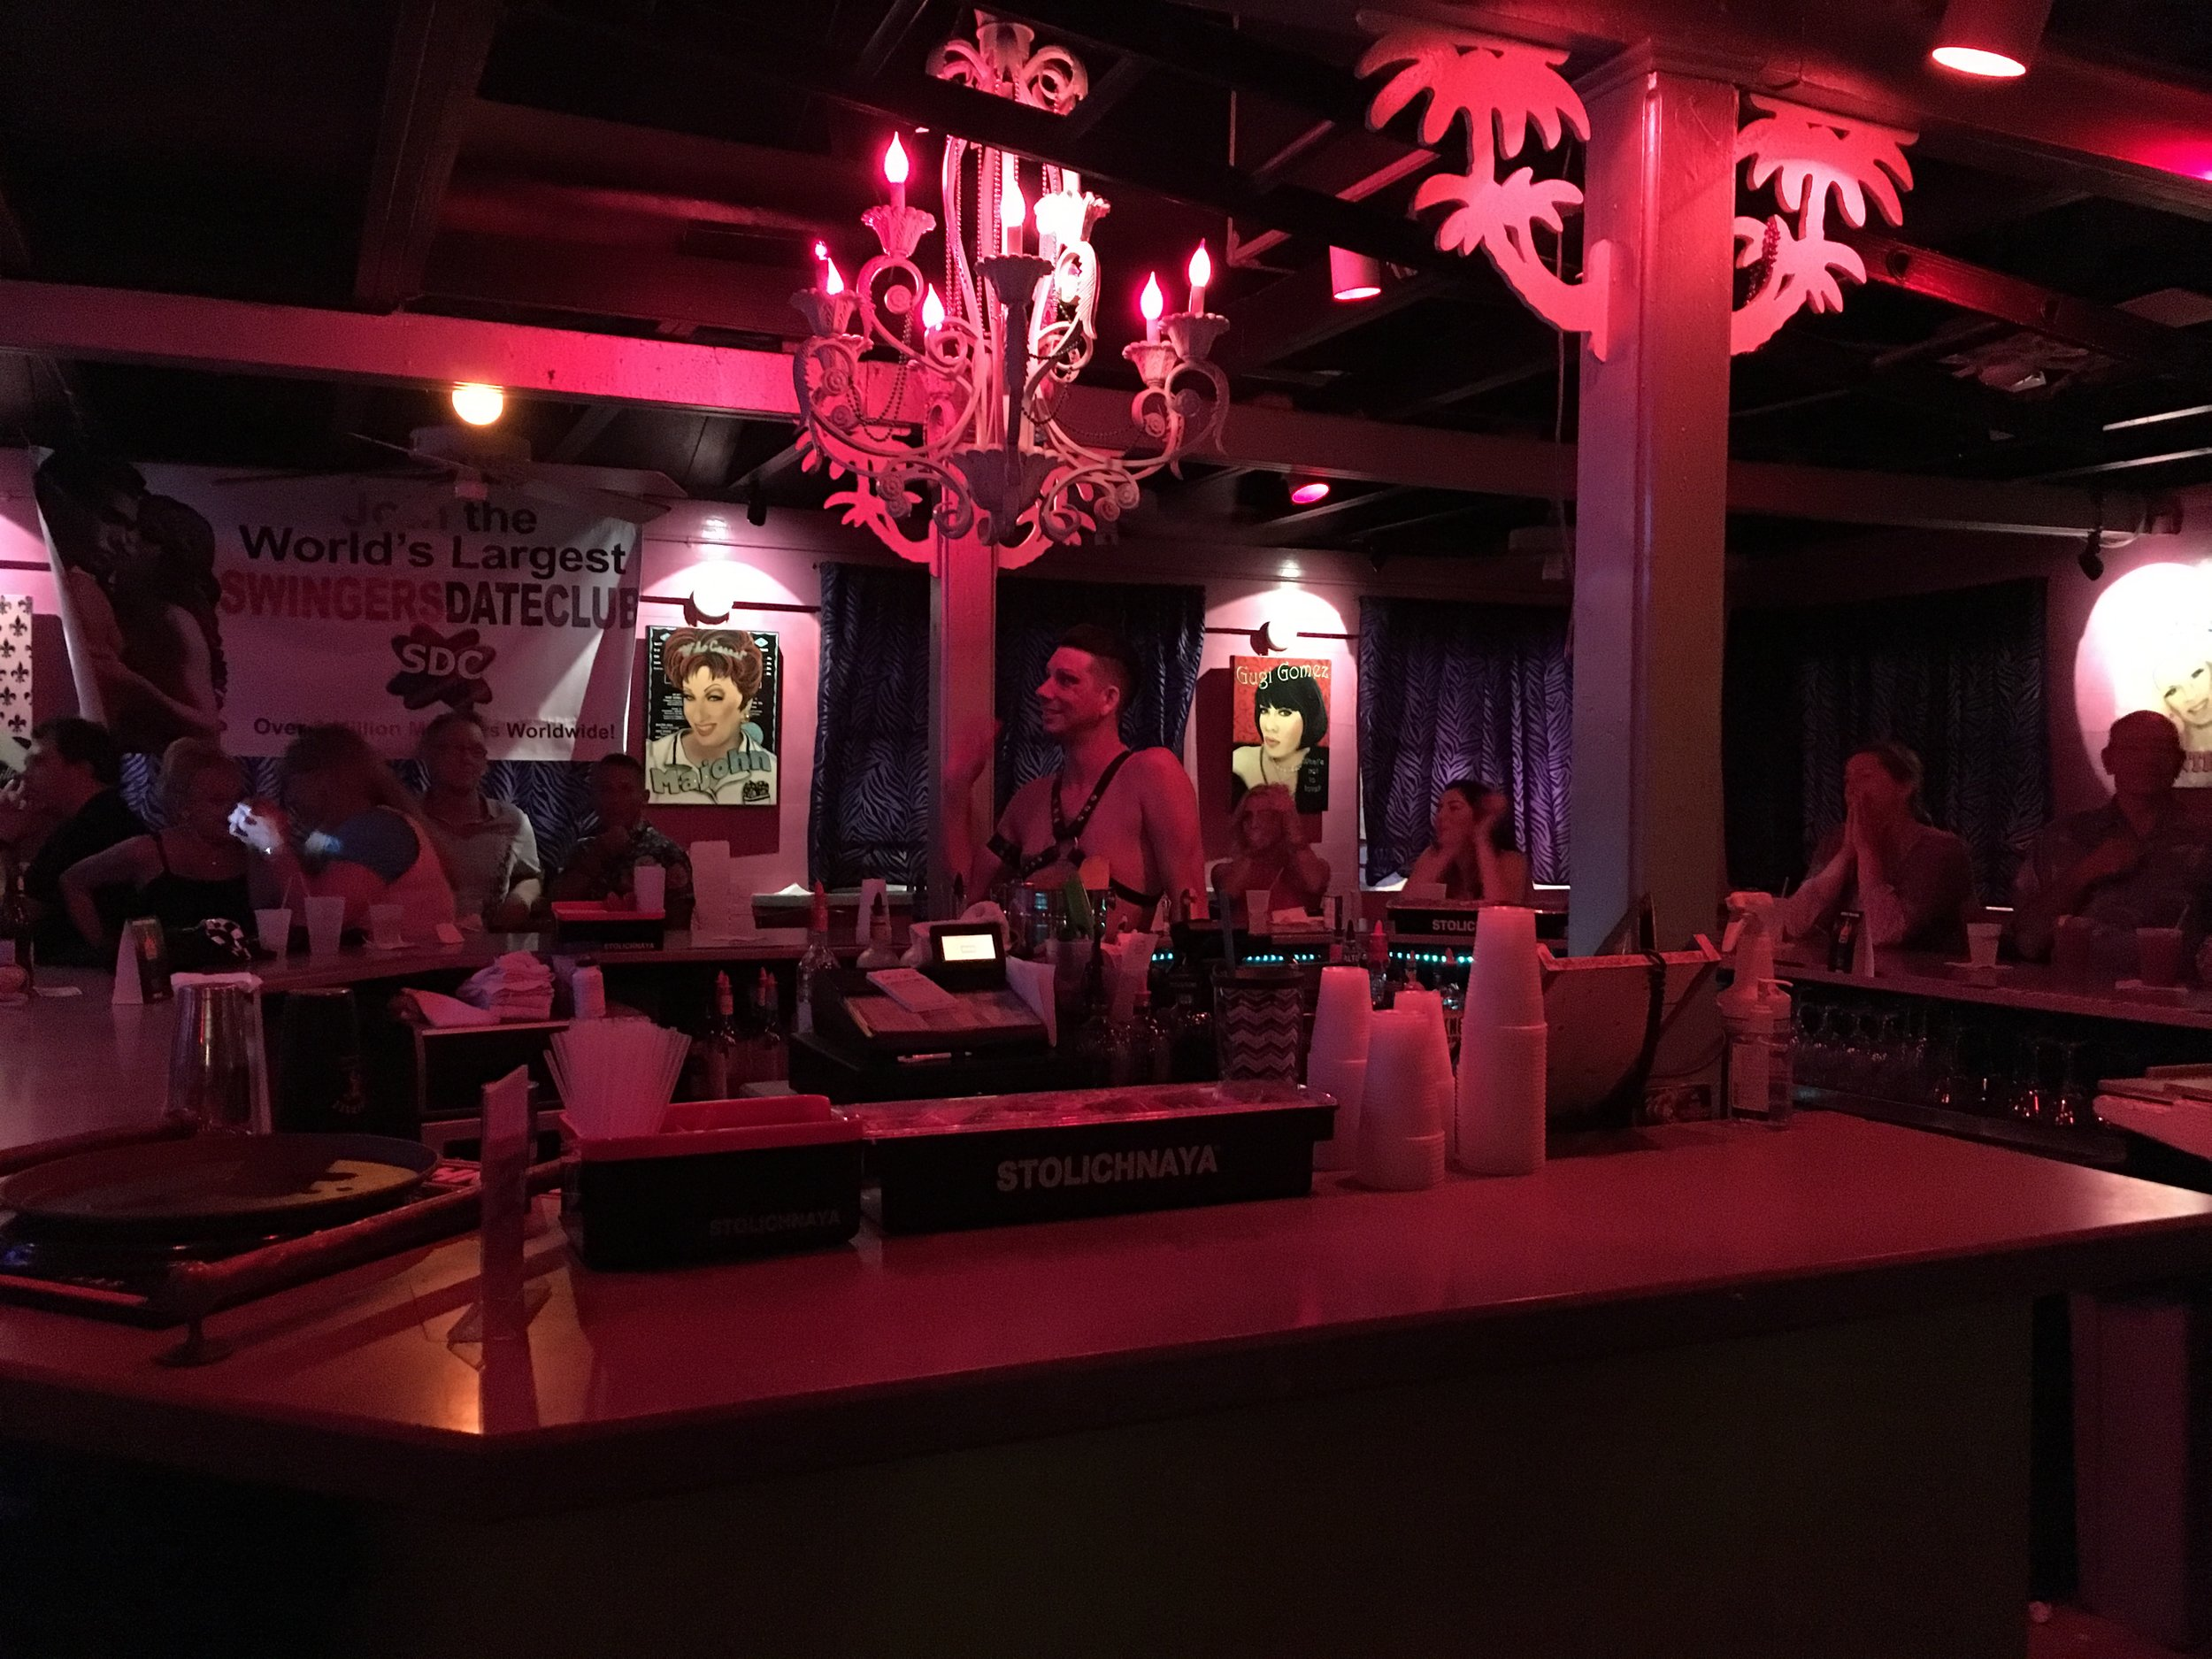 fantasy fest 2016 key west crowd shots pictures body paint nudity bar at 801 bourbon street